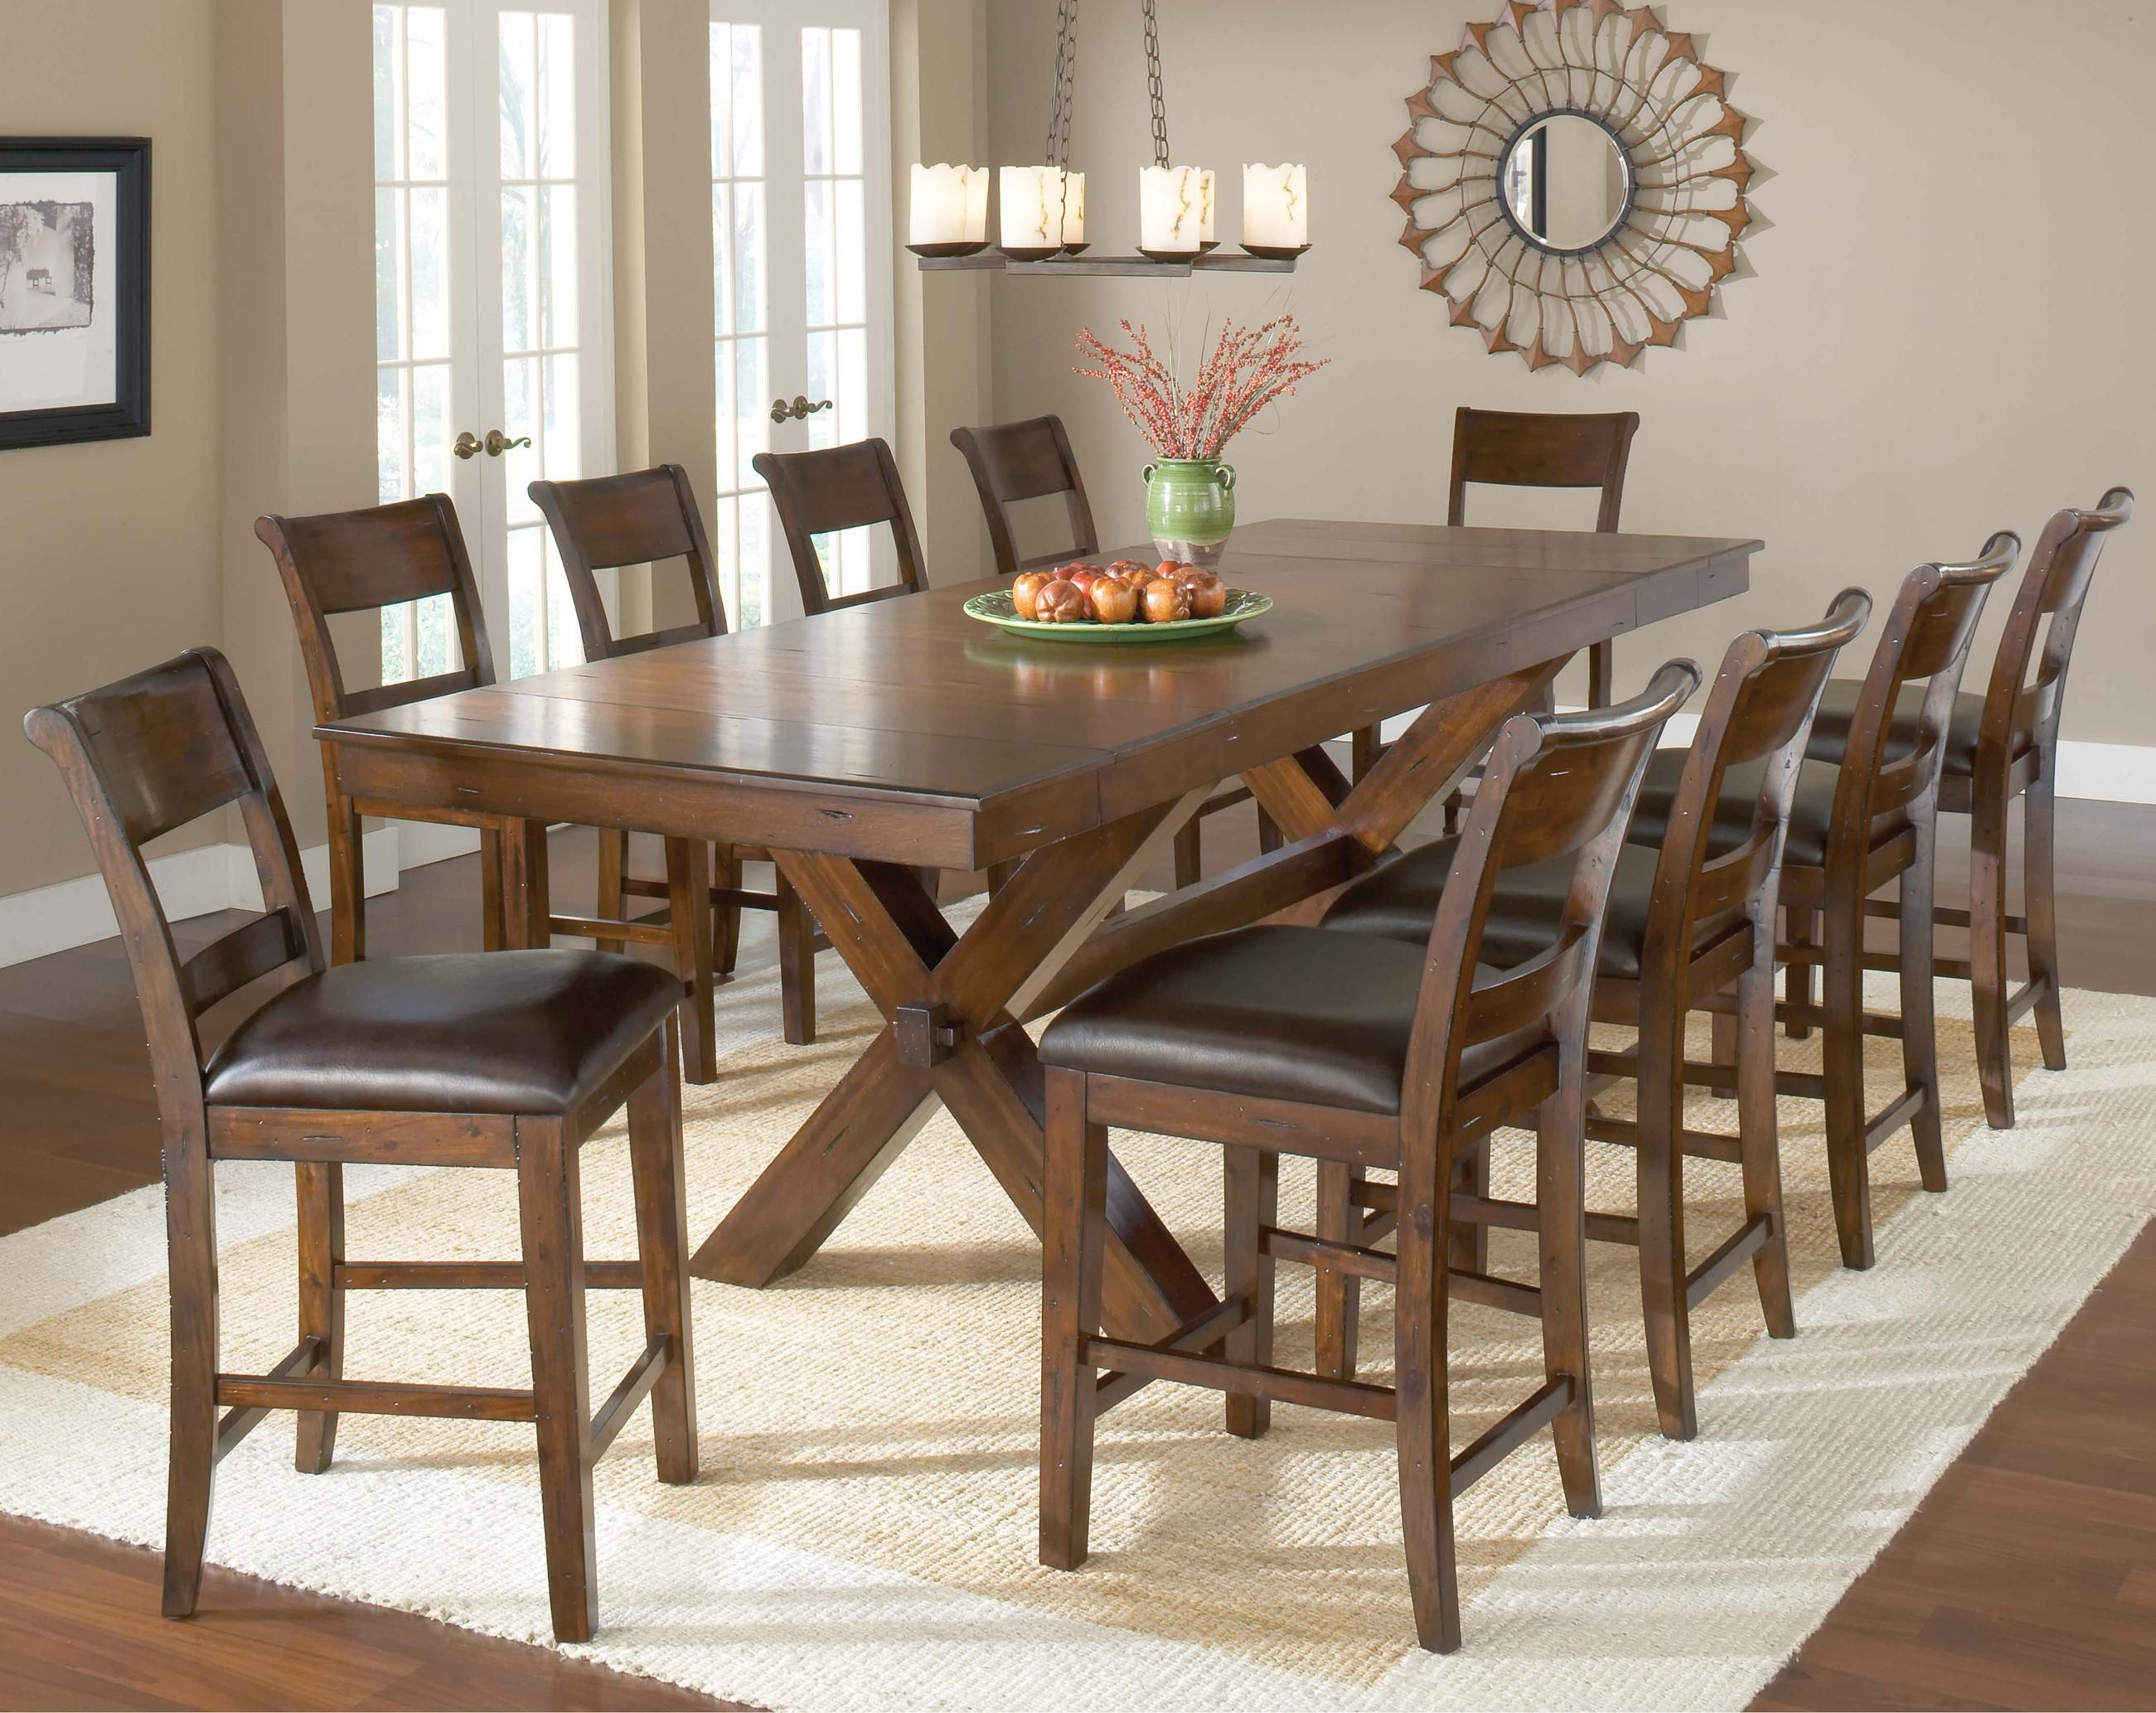 11 Piece Pub Table And Stool Set Counter Height Dining Sets Dining Room Sets Kitchen Dining Furniture